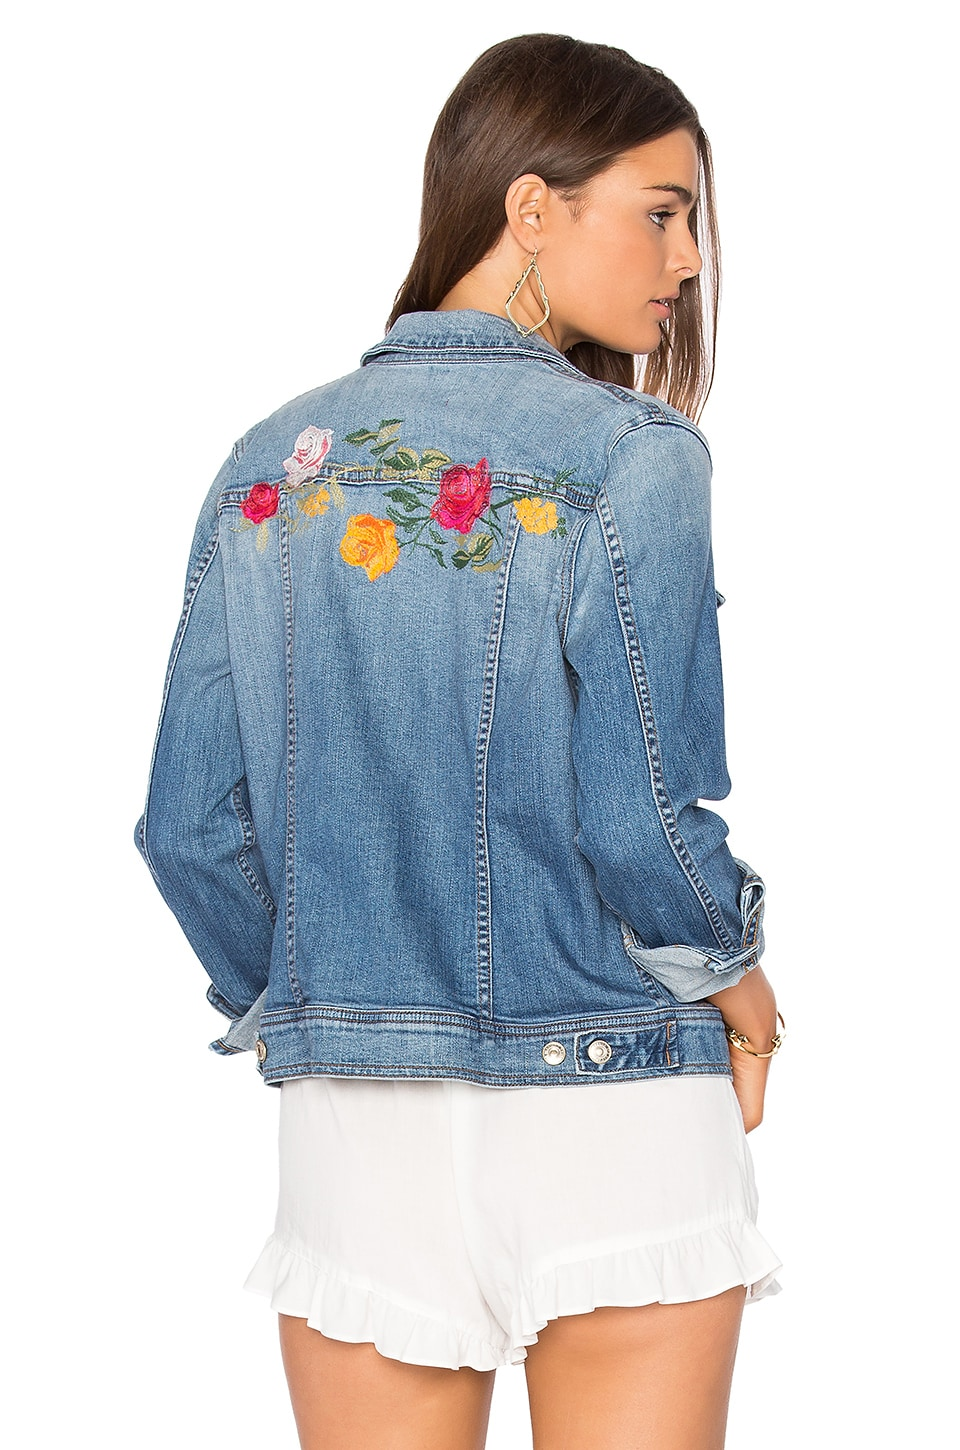 Photo of Trucker Jacket by 7 For All Mankind on sale